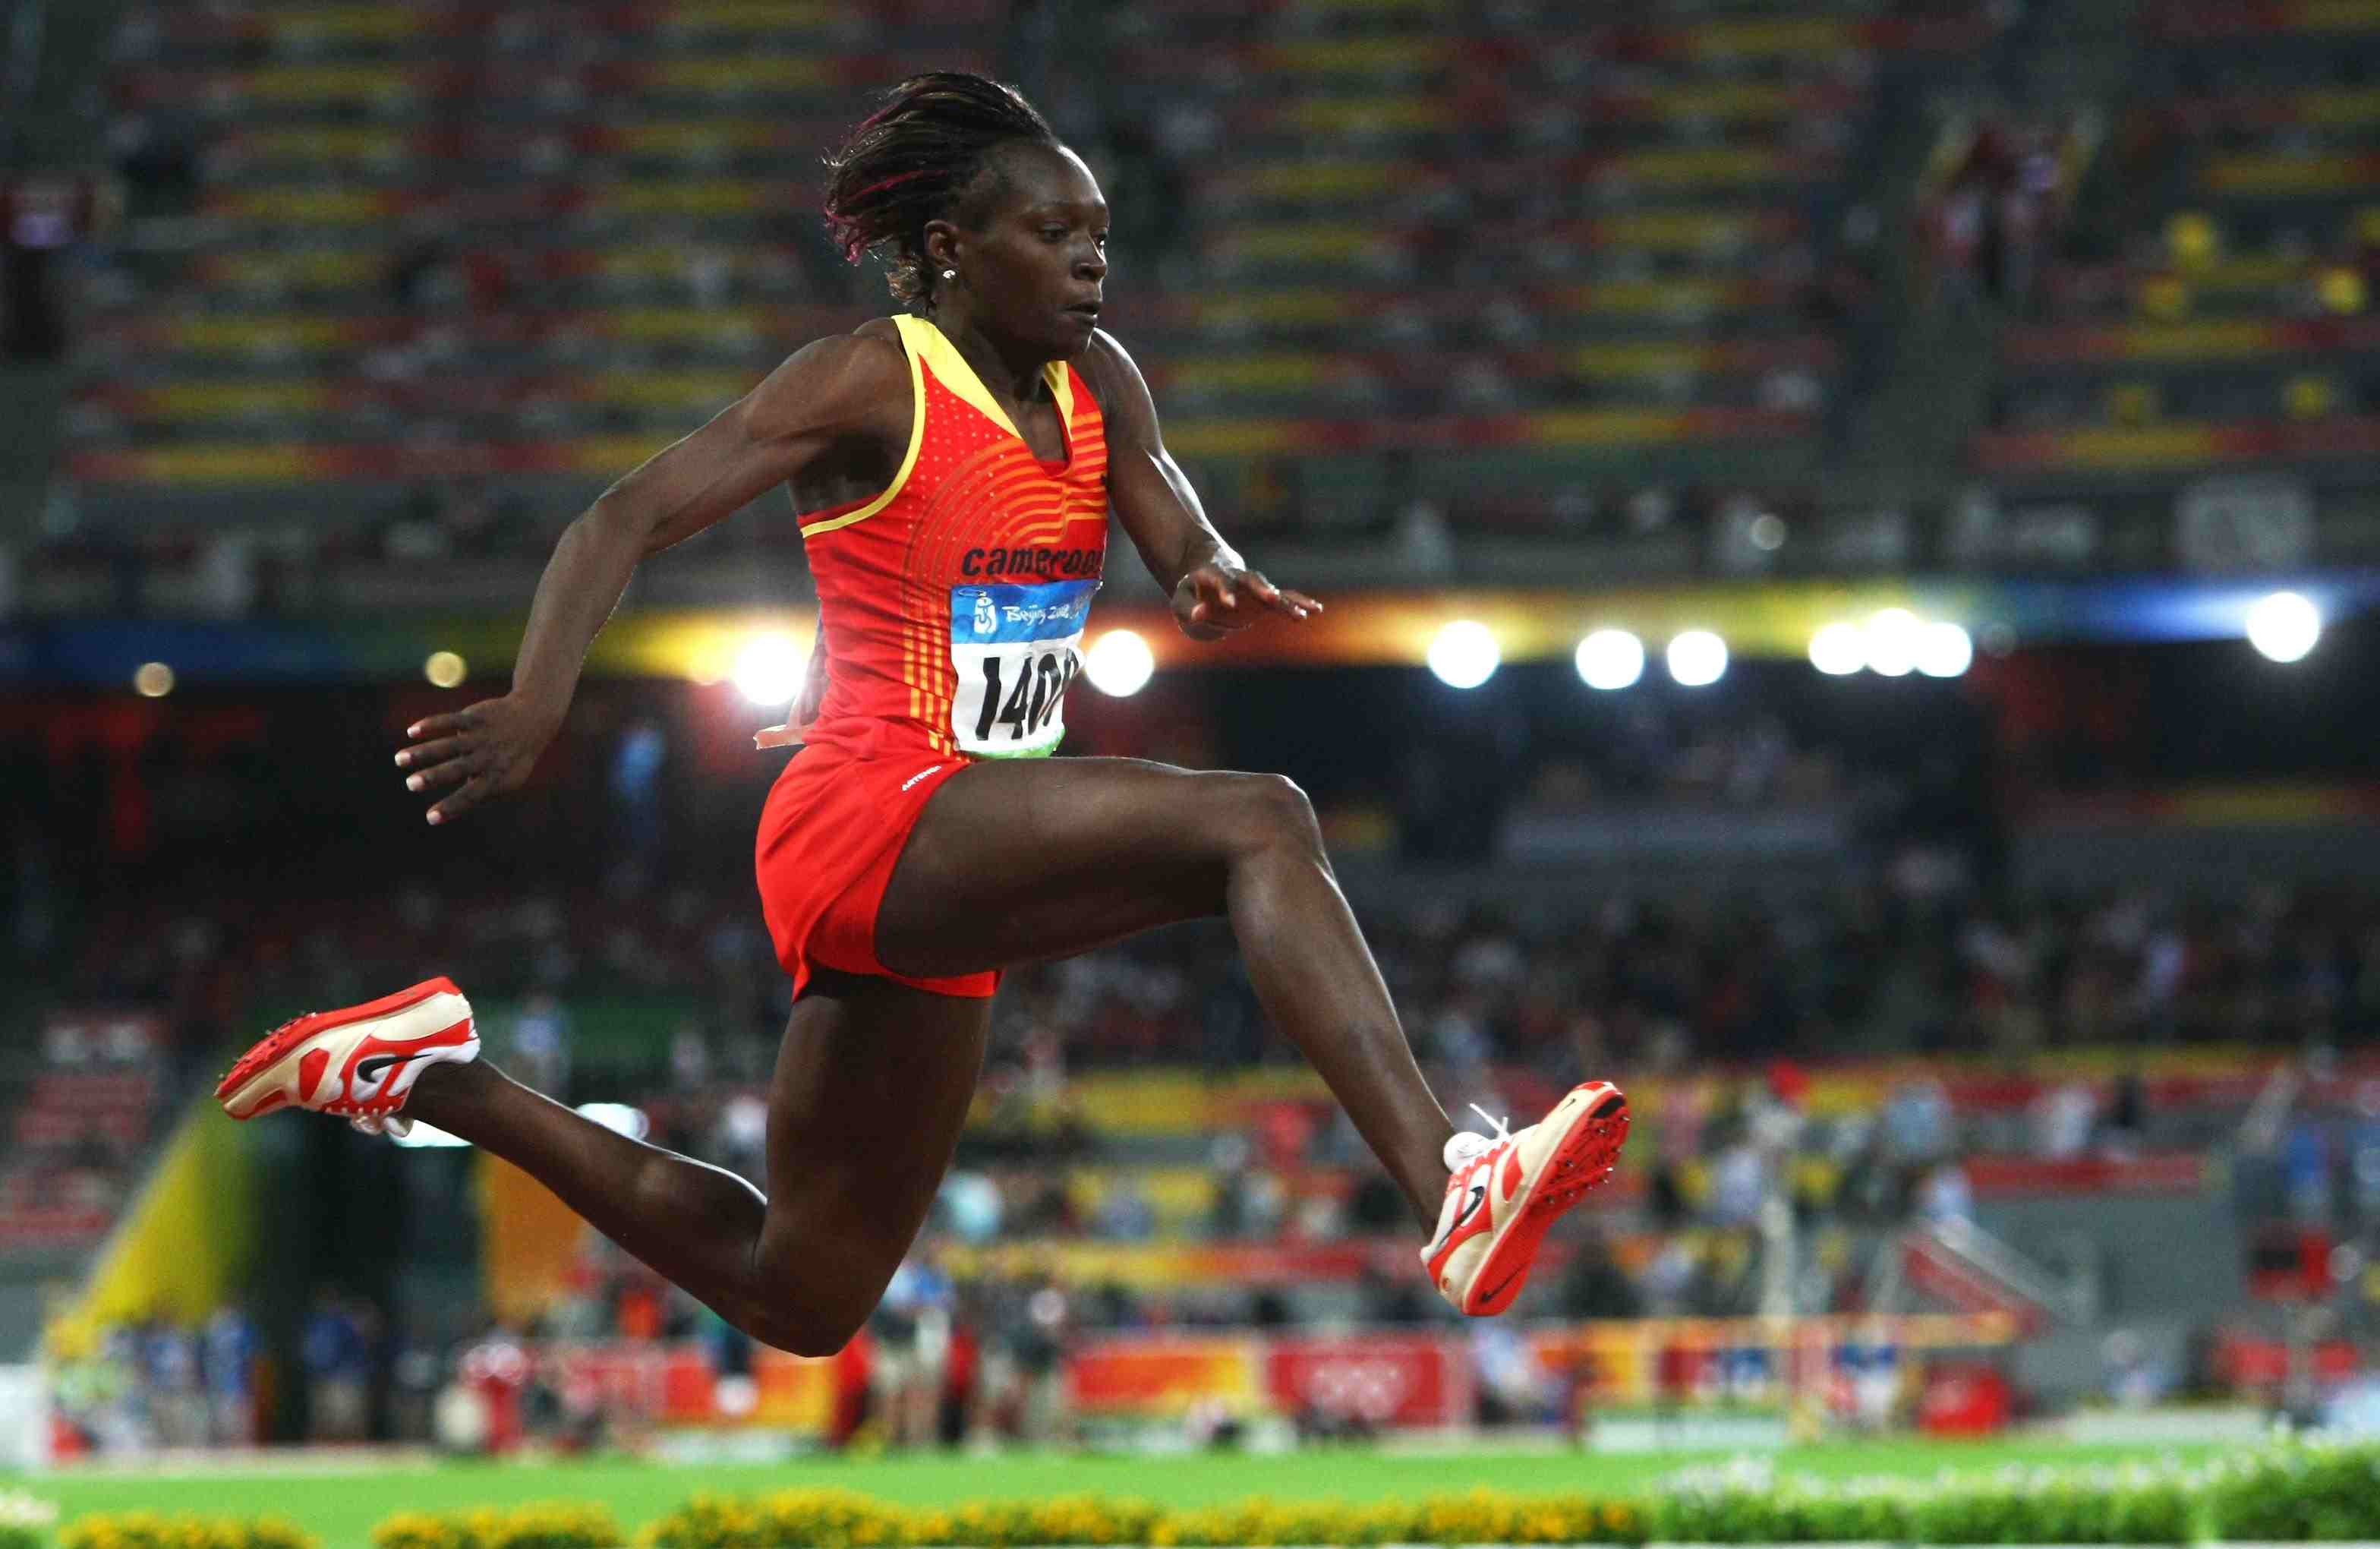 Francoise Mbango Etone, on her way to victory during the 2008 Olympic triple jump final.